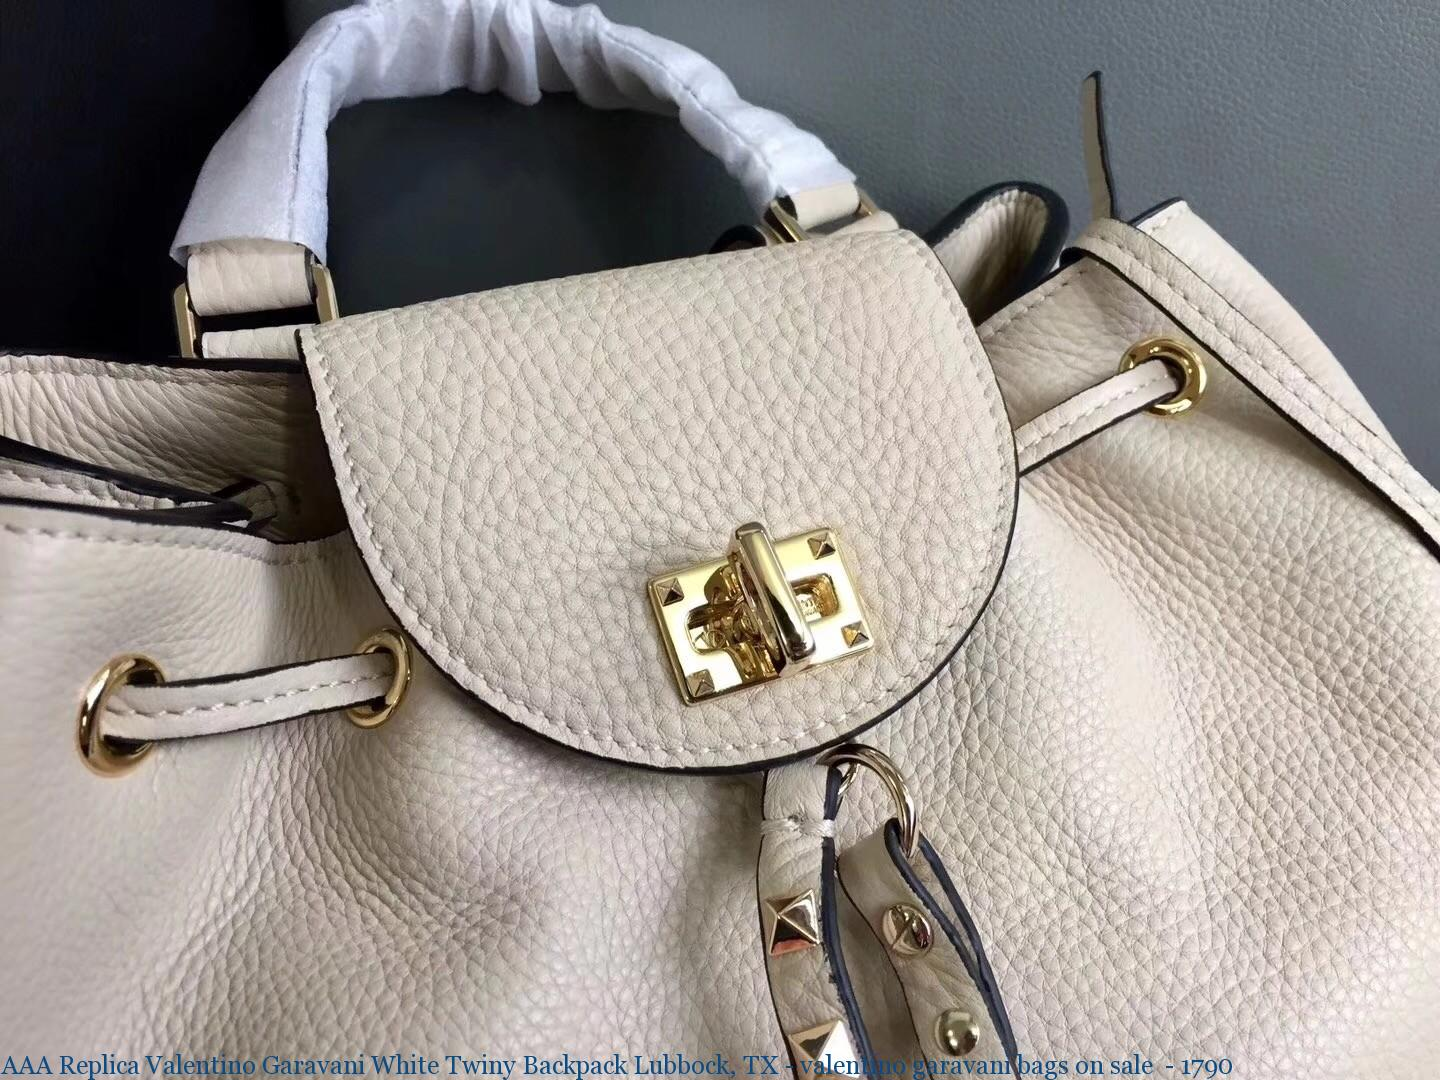 Aaa Replica Valentino Garavani White Twiny Backpack